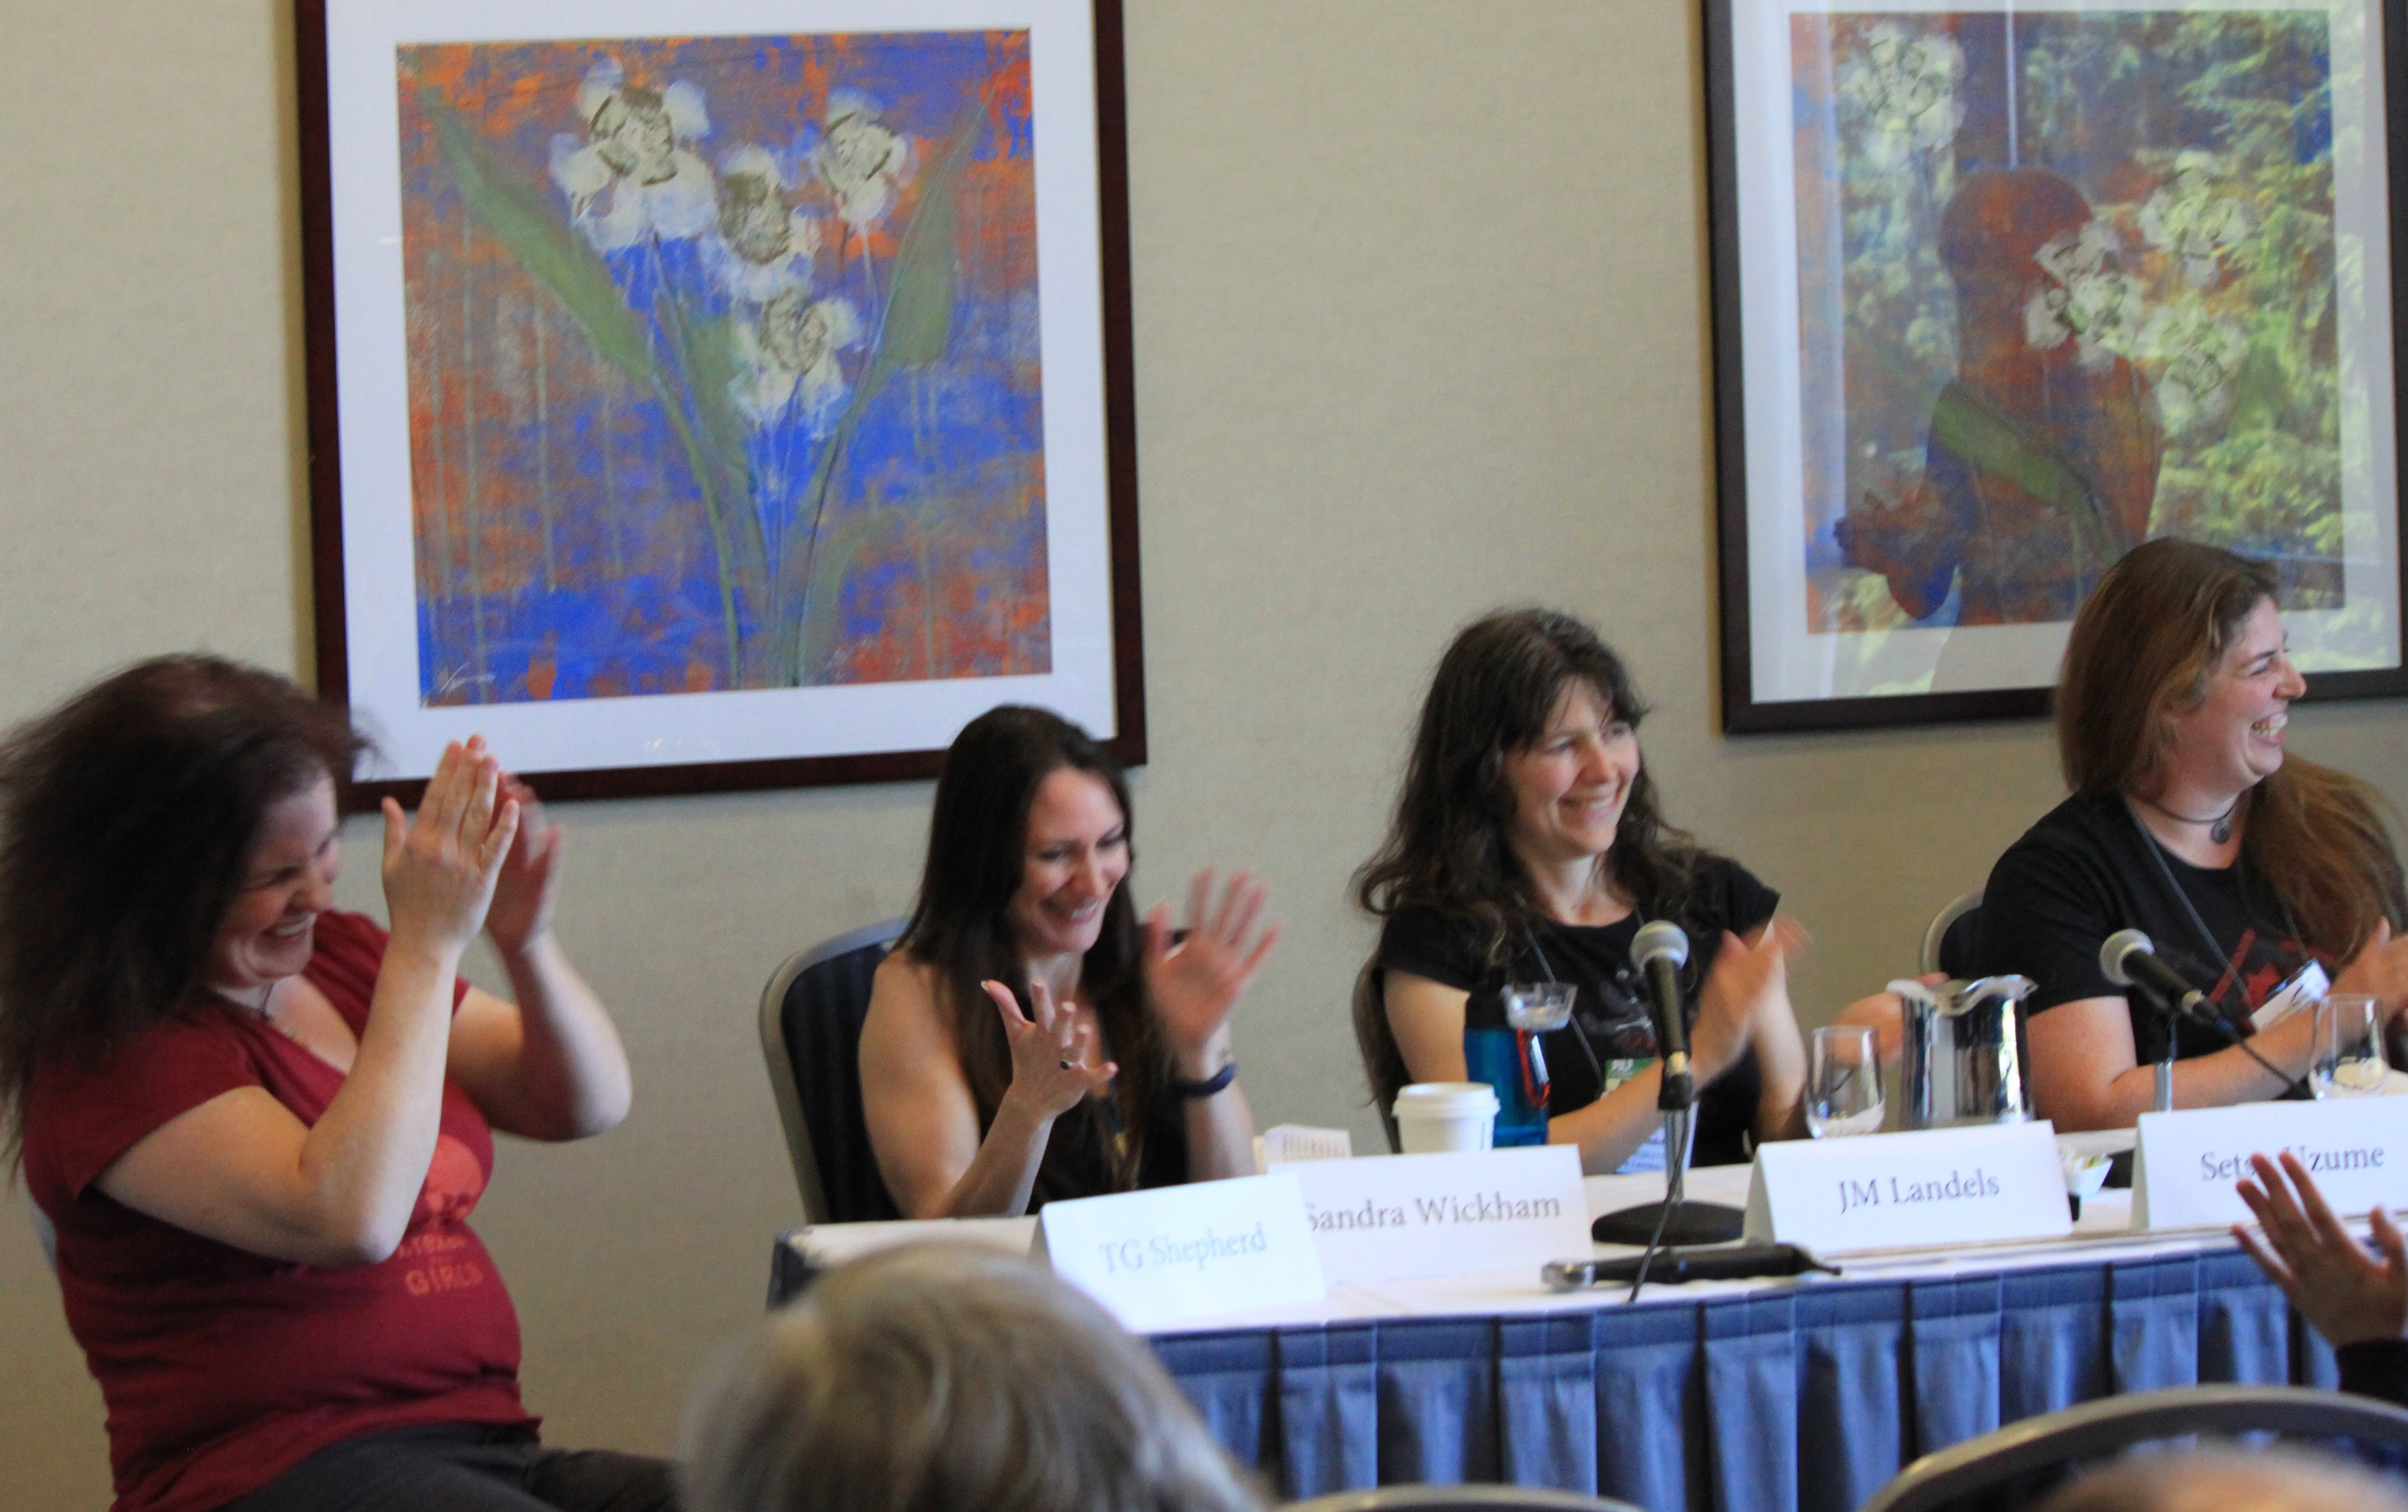 Lots of laughs on the Real Life Superwomen Panel, CIF 2016. (L to R) Lisa Gemino, Sandra Wickham, JM Landels, Setsu Uzume